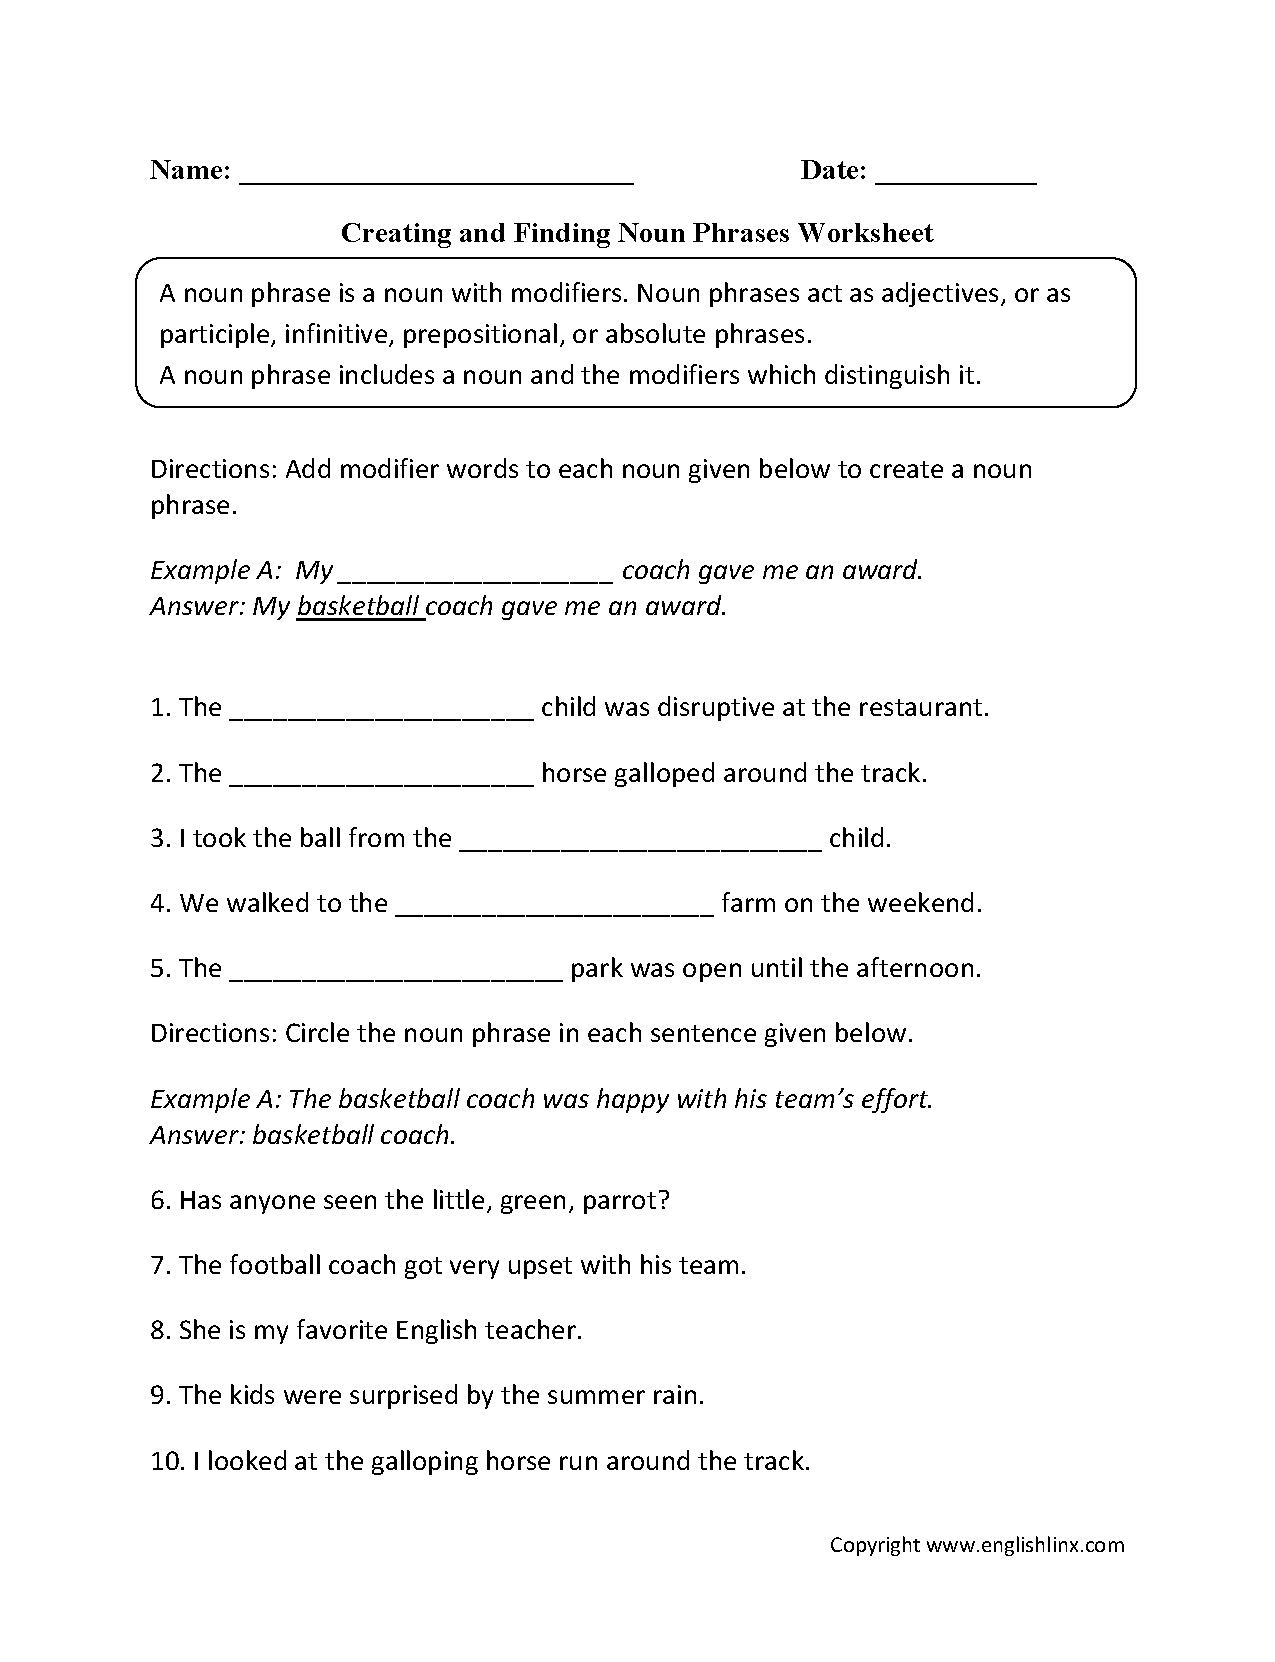 nouns worksheets noun phrases worksheets nouns worksheets noun phrases ...